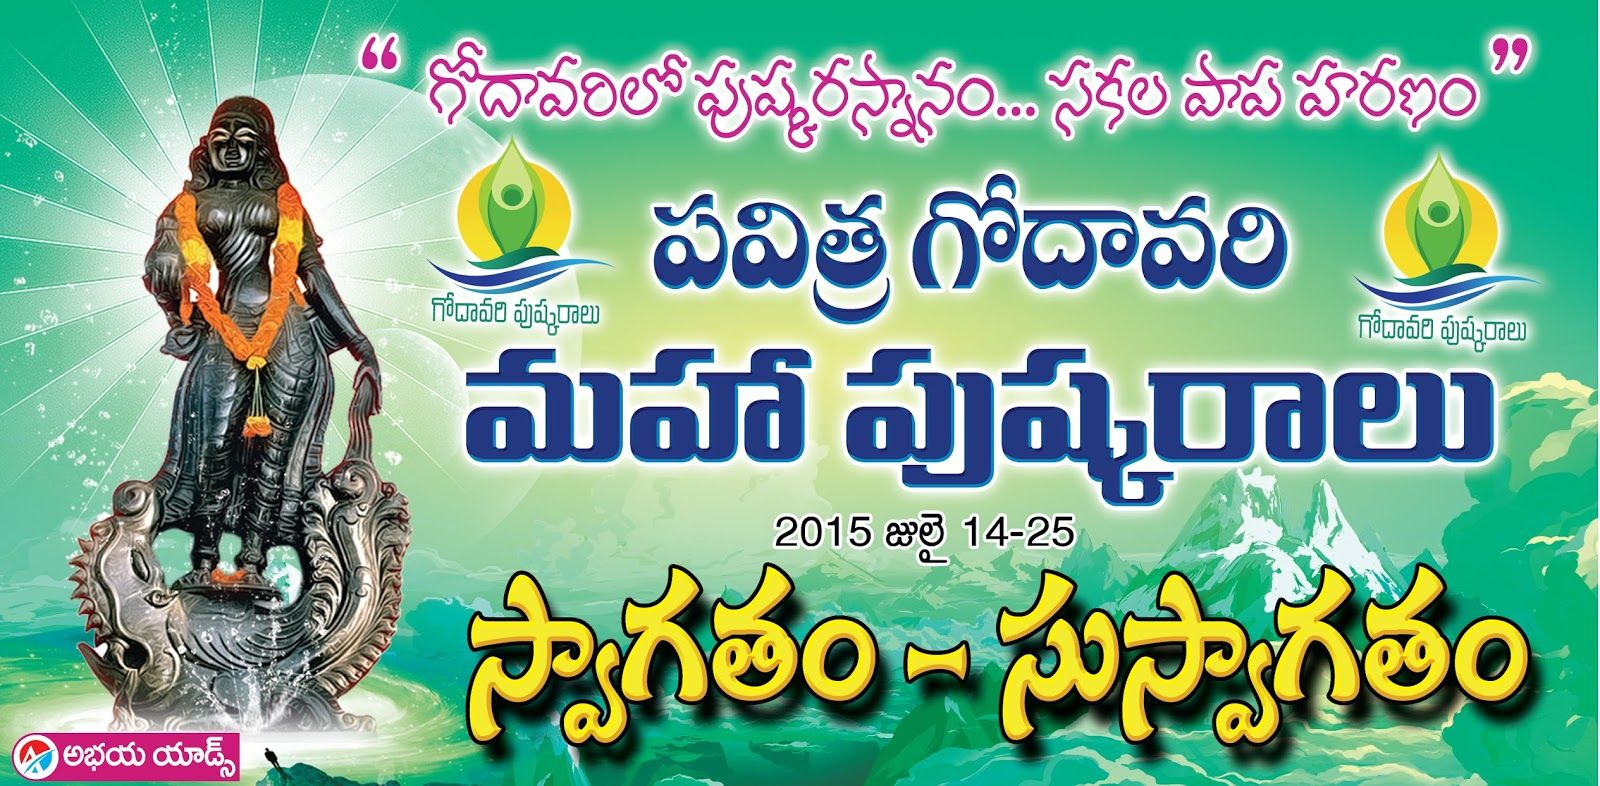 Godavari Pushkaralu Quotes And Logo Deisgn Telangana Pinterest